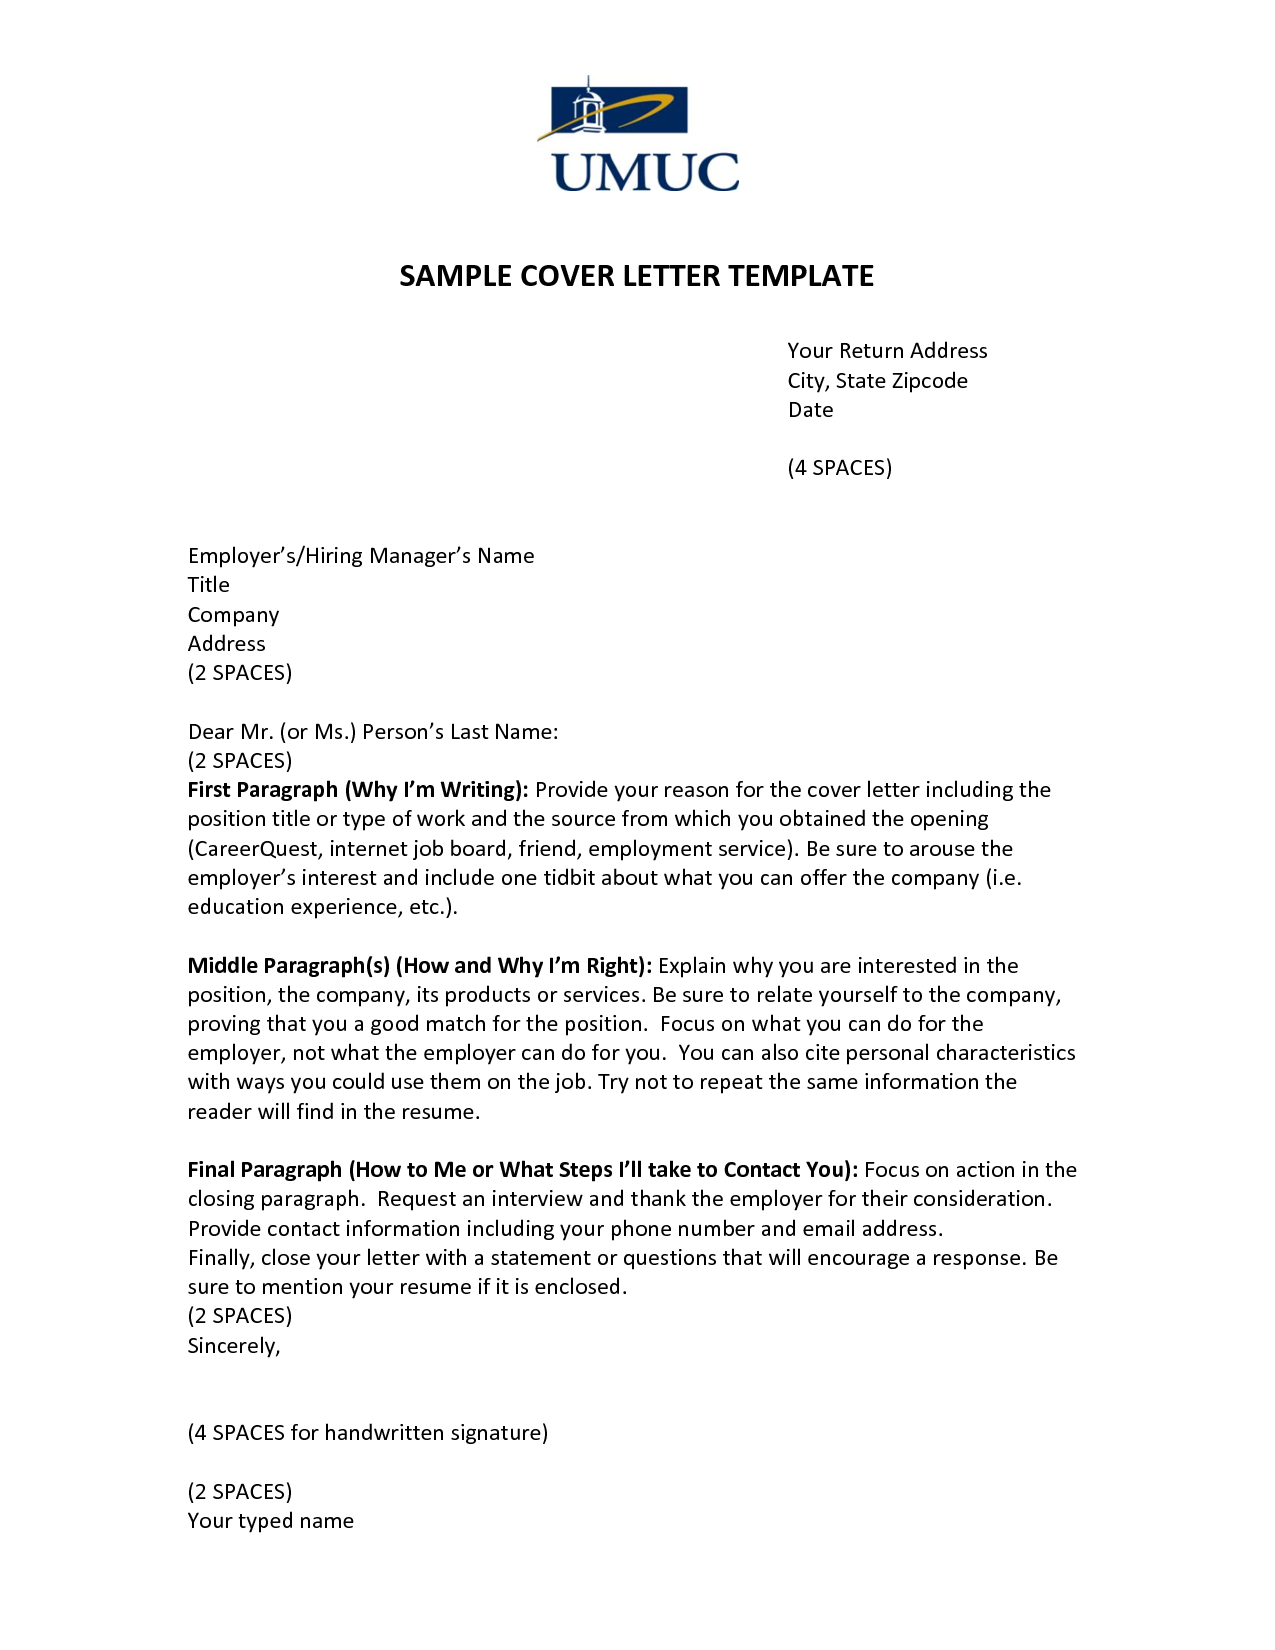 SAMPLE COVER LETTER TEMPLATE UMUCover Letter Template Application – Sample It Cover Letter Template